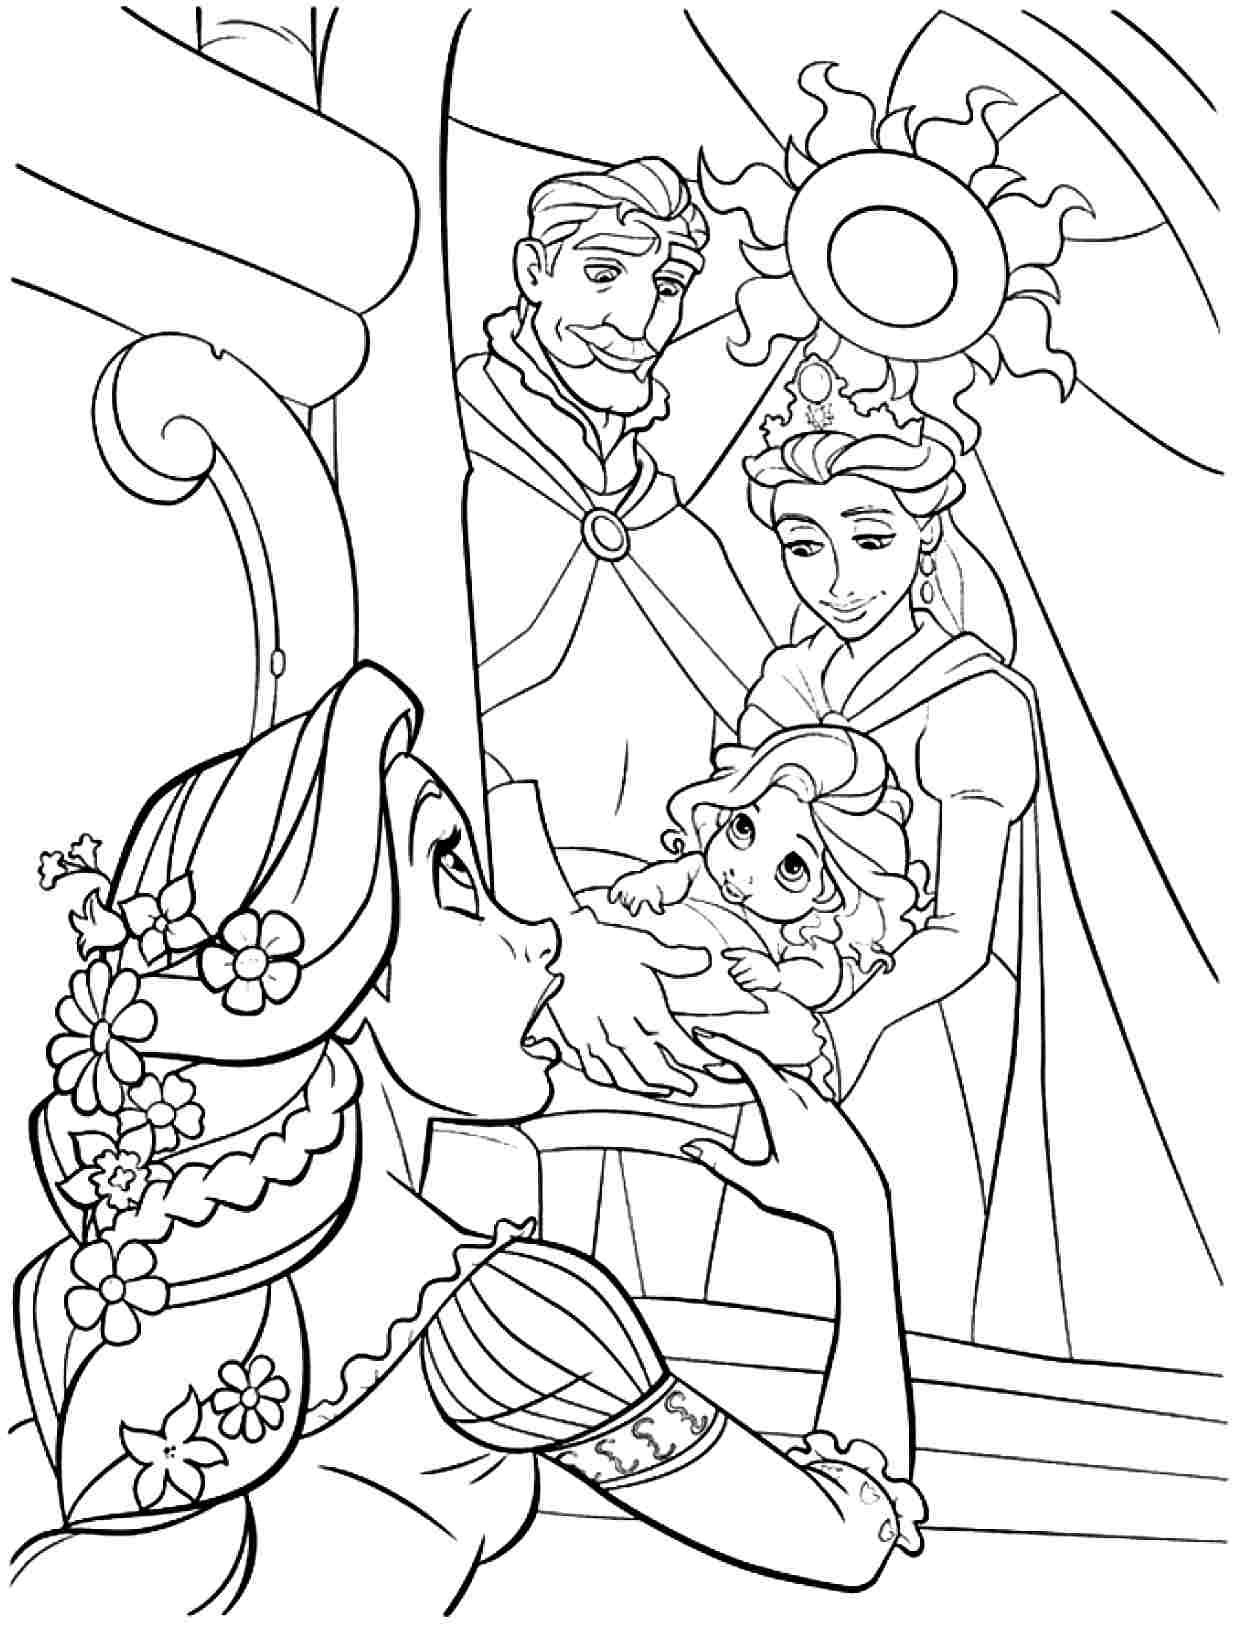 Baby Rapunzel Tangled Coloring Page